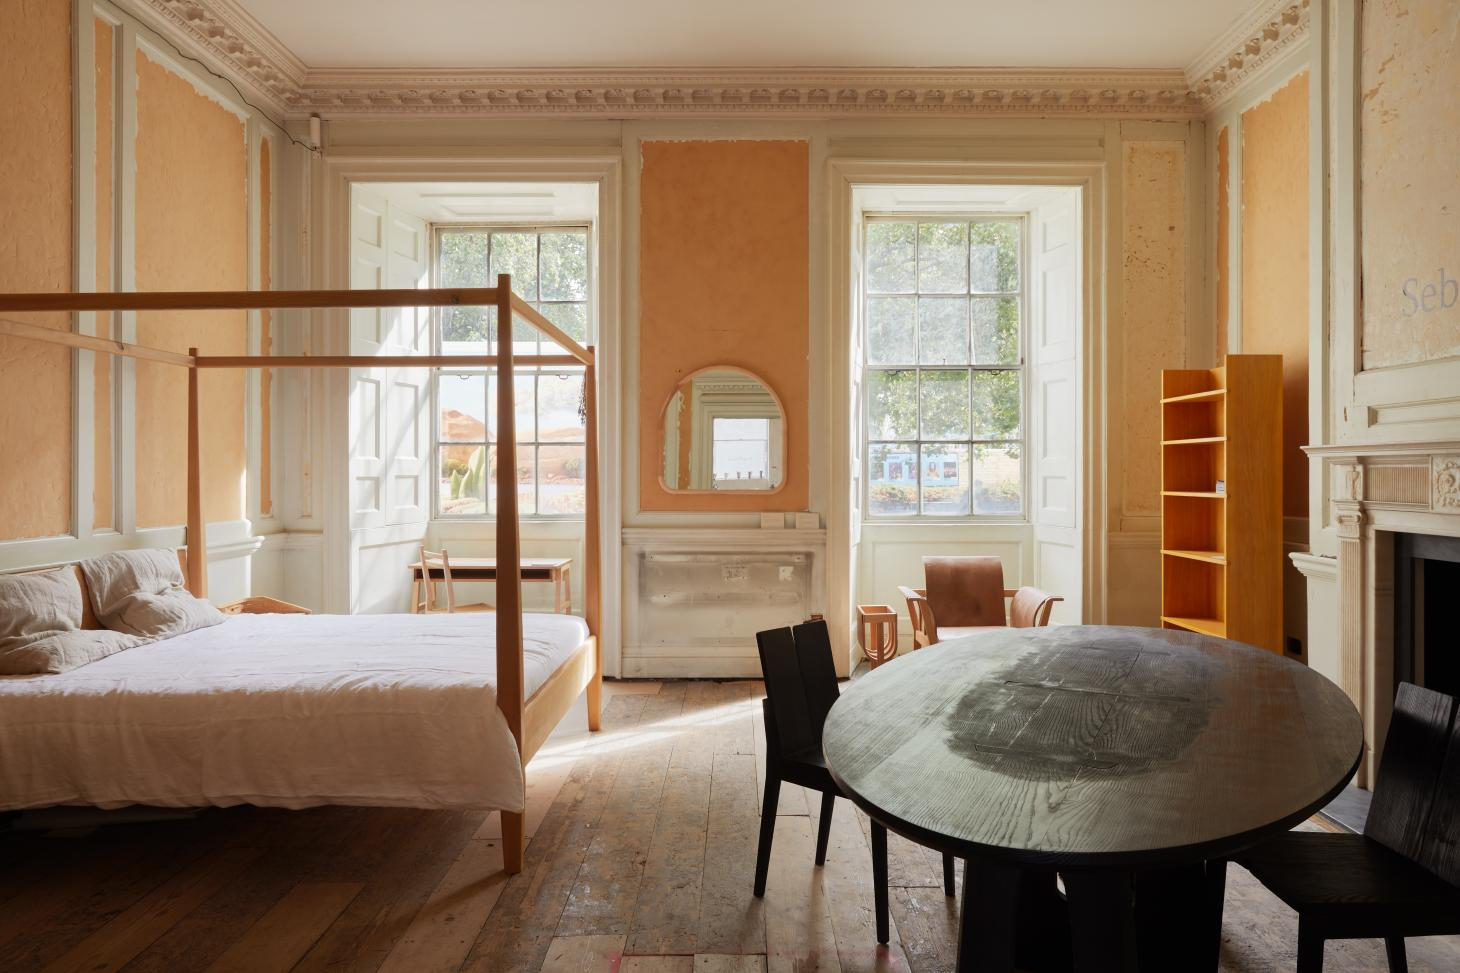 Domestic setting with bed and table by Sebastian Cox